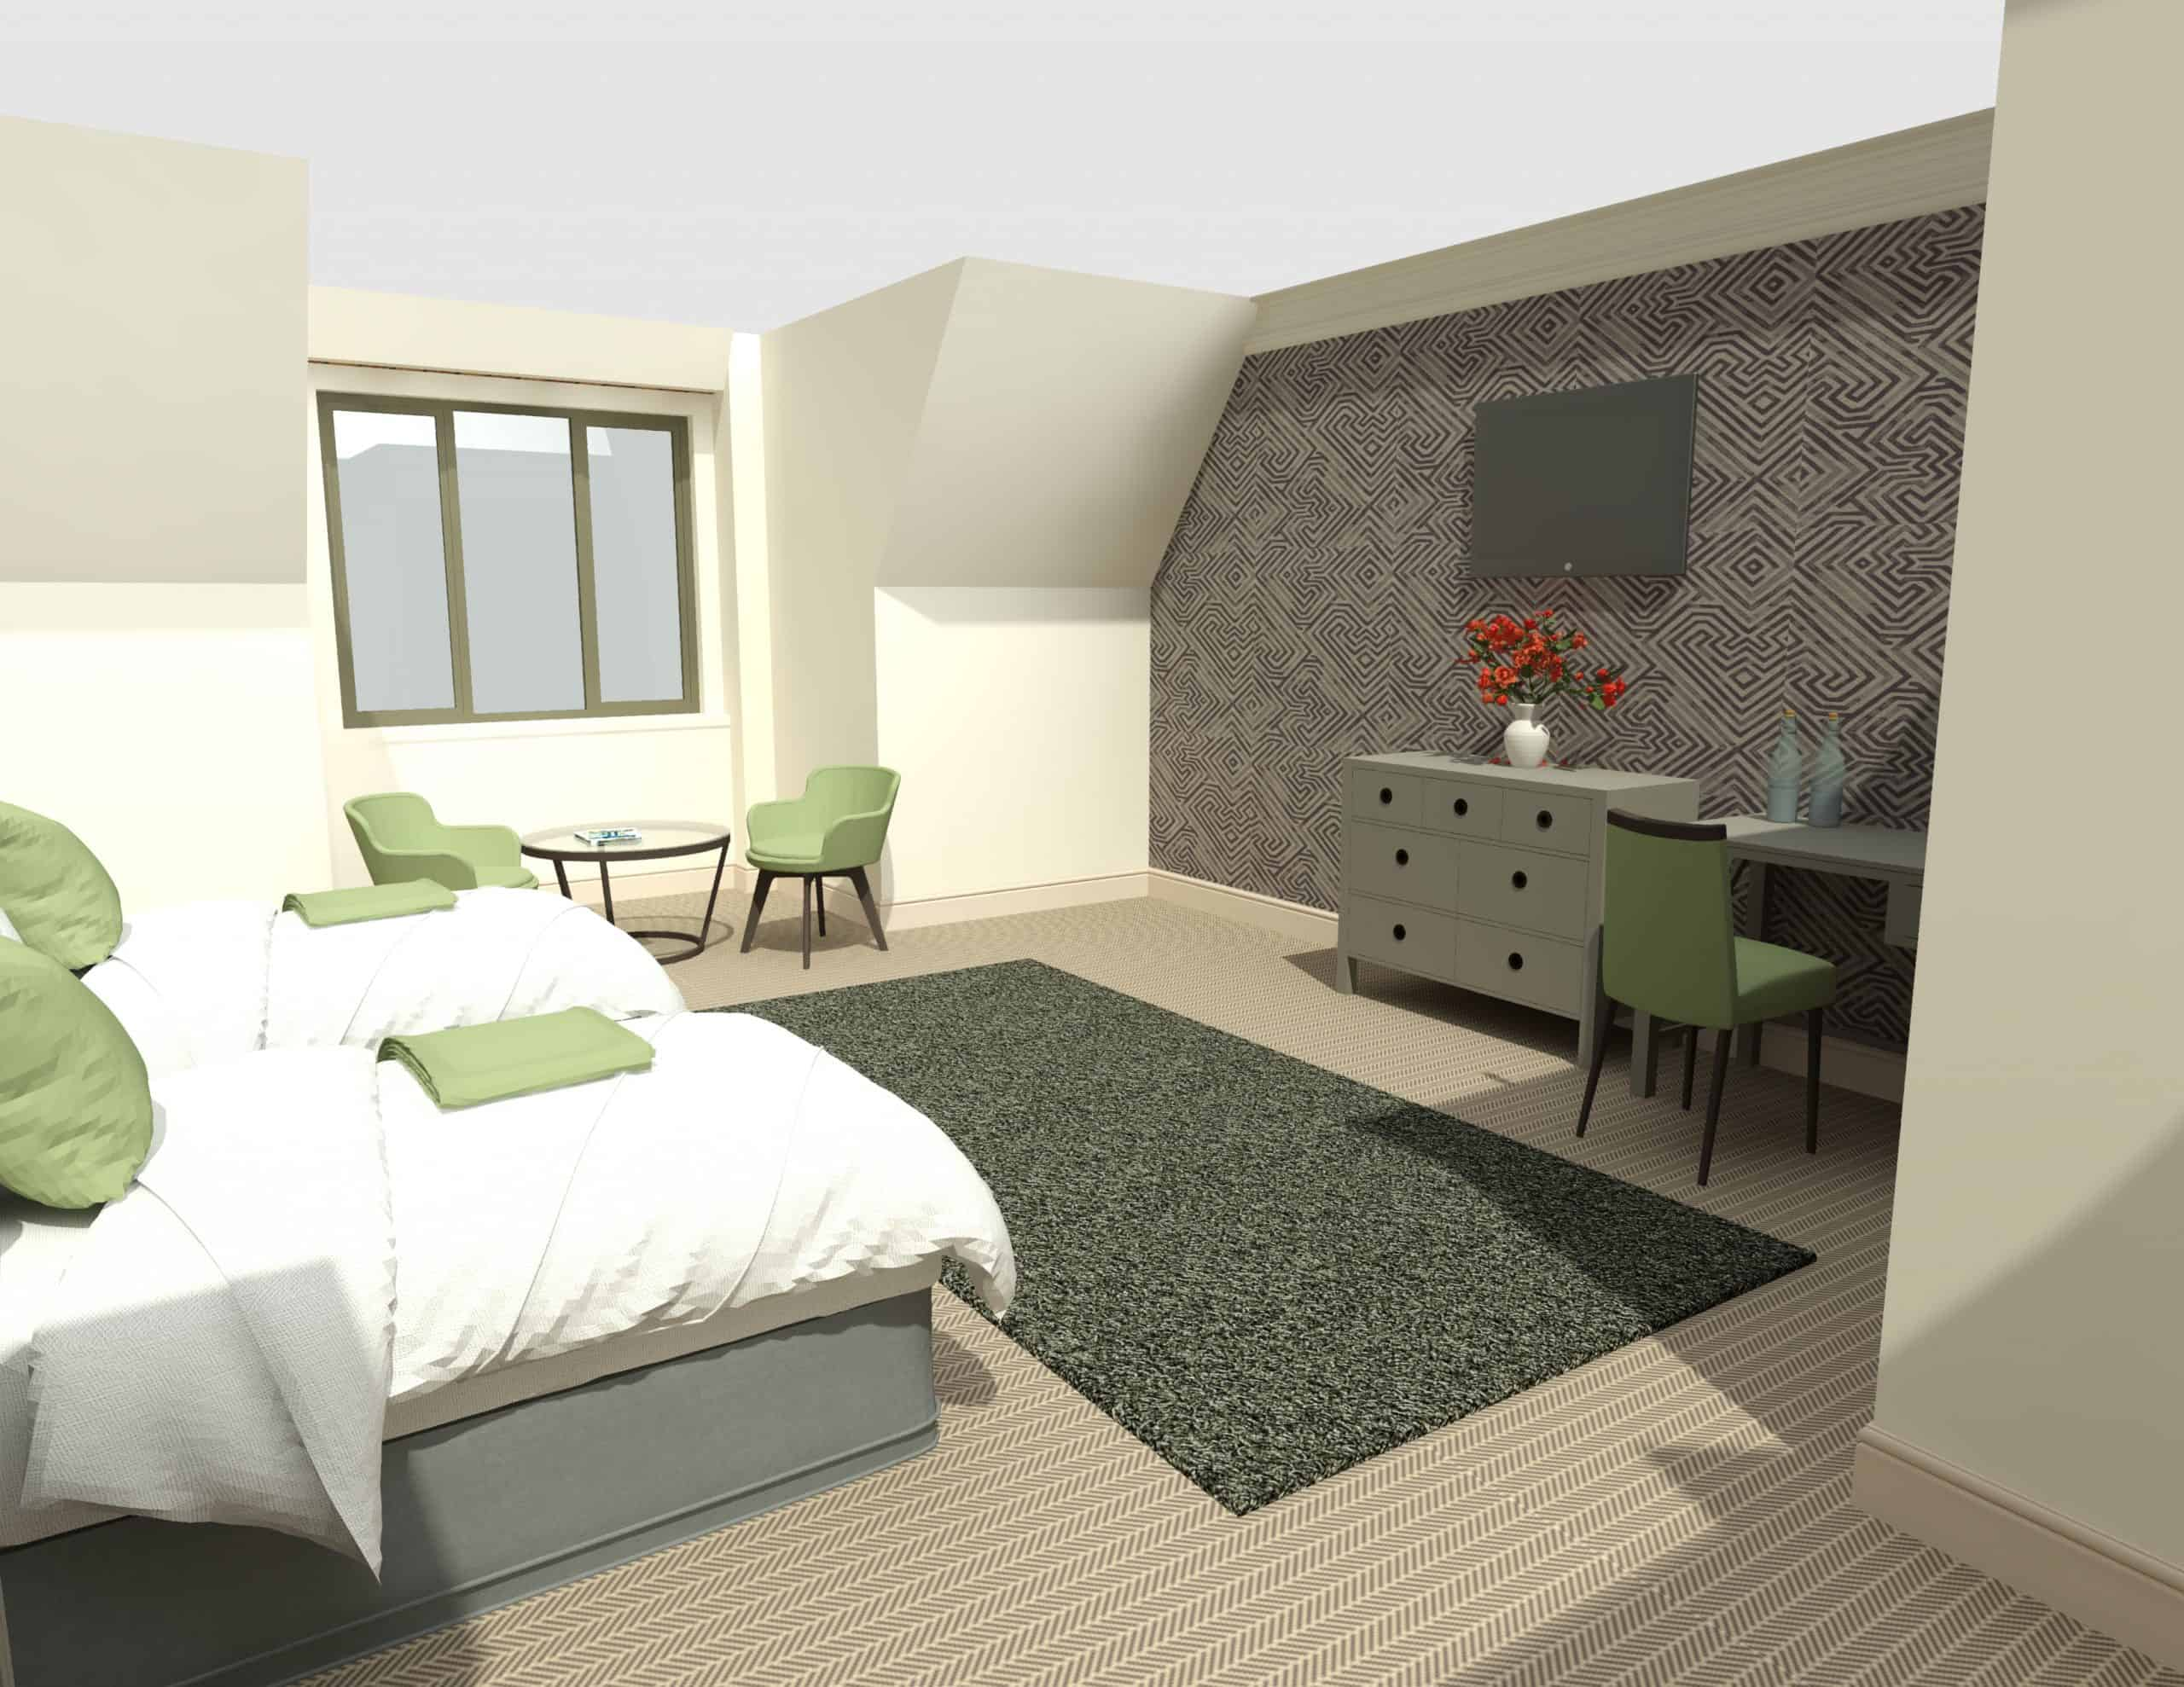 E1282 3Dmodel03 - 1st Flr Interior - Heacham Manor-Temp0023